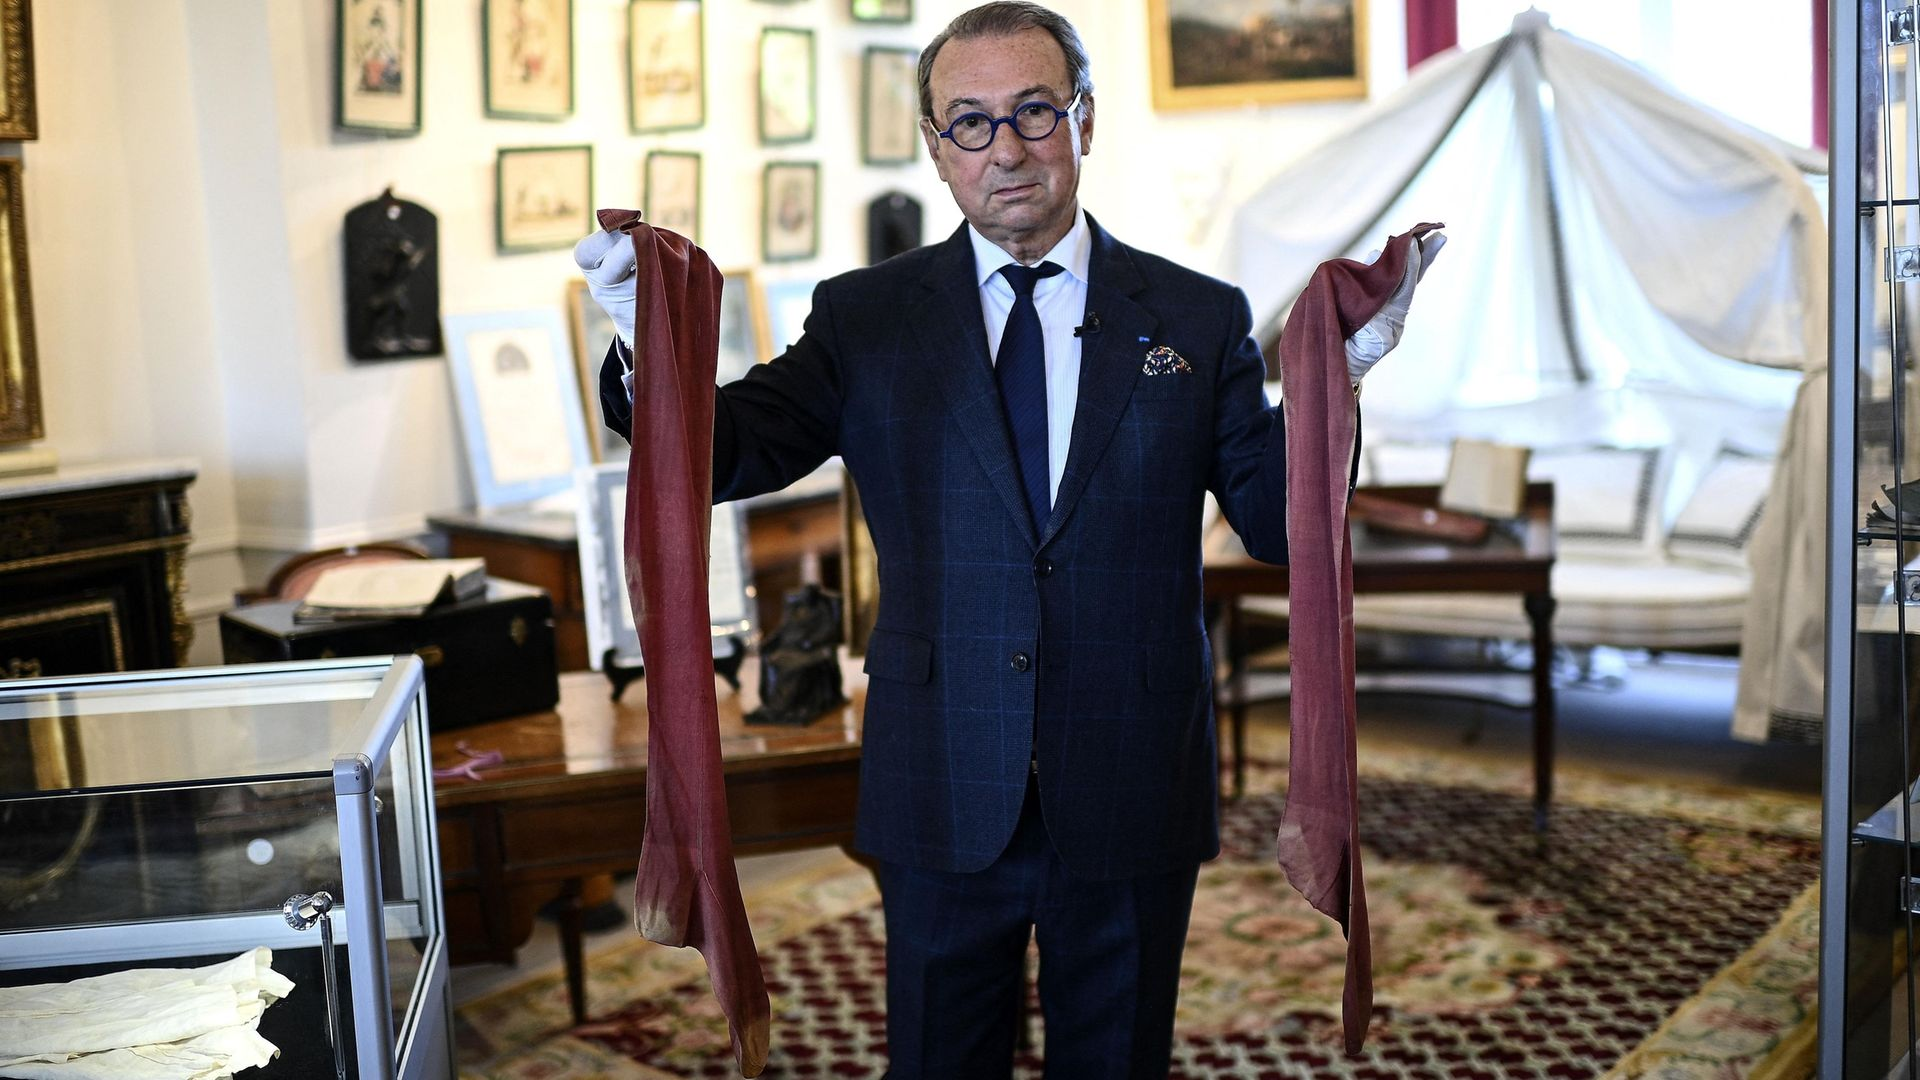 Auctioneer Jean-Pierre Osenat holds a pair of stockings that belonged to Napoleon - Credit: Photo by CHRISTOPHE ARCHAMBAULT/AFP via Getty Images